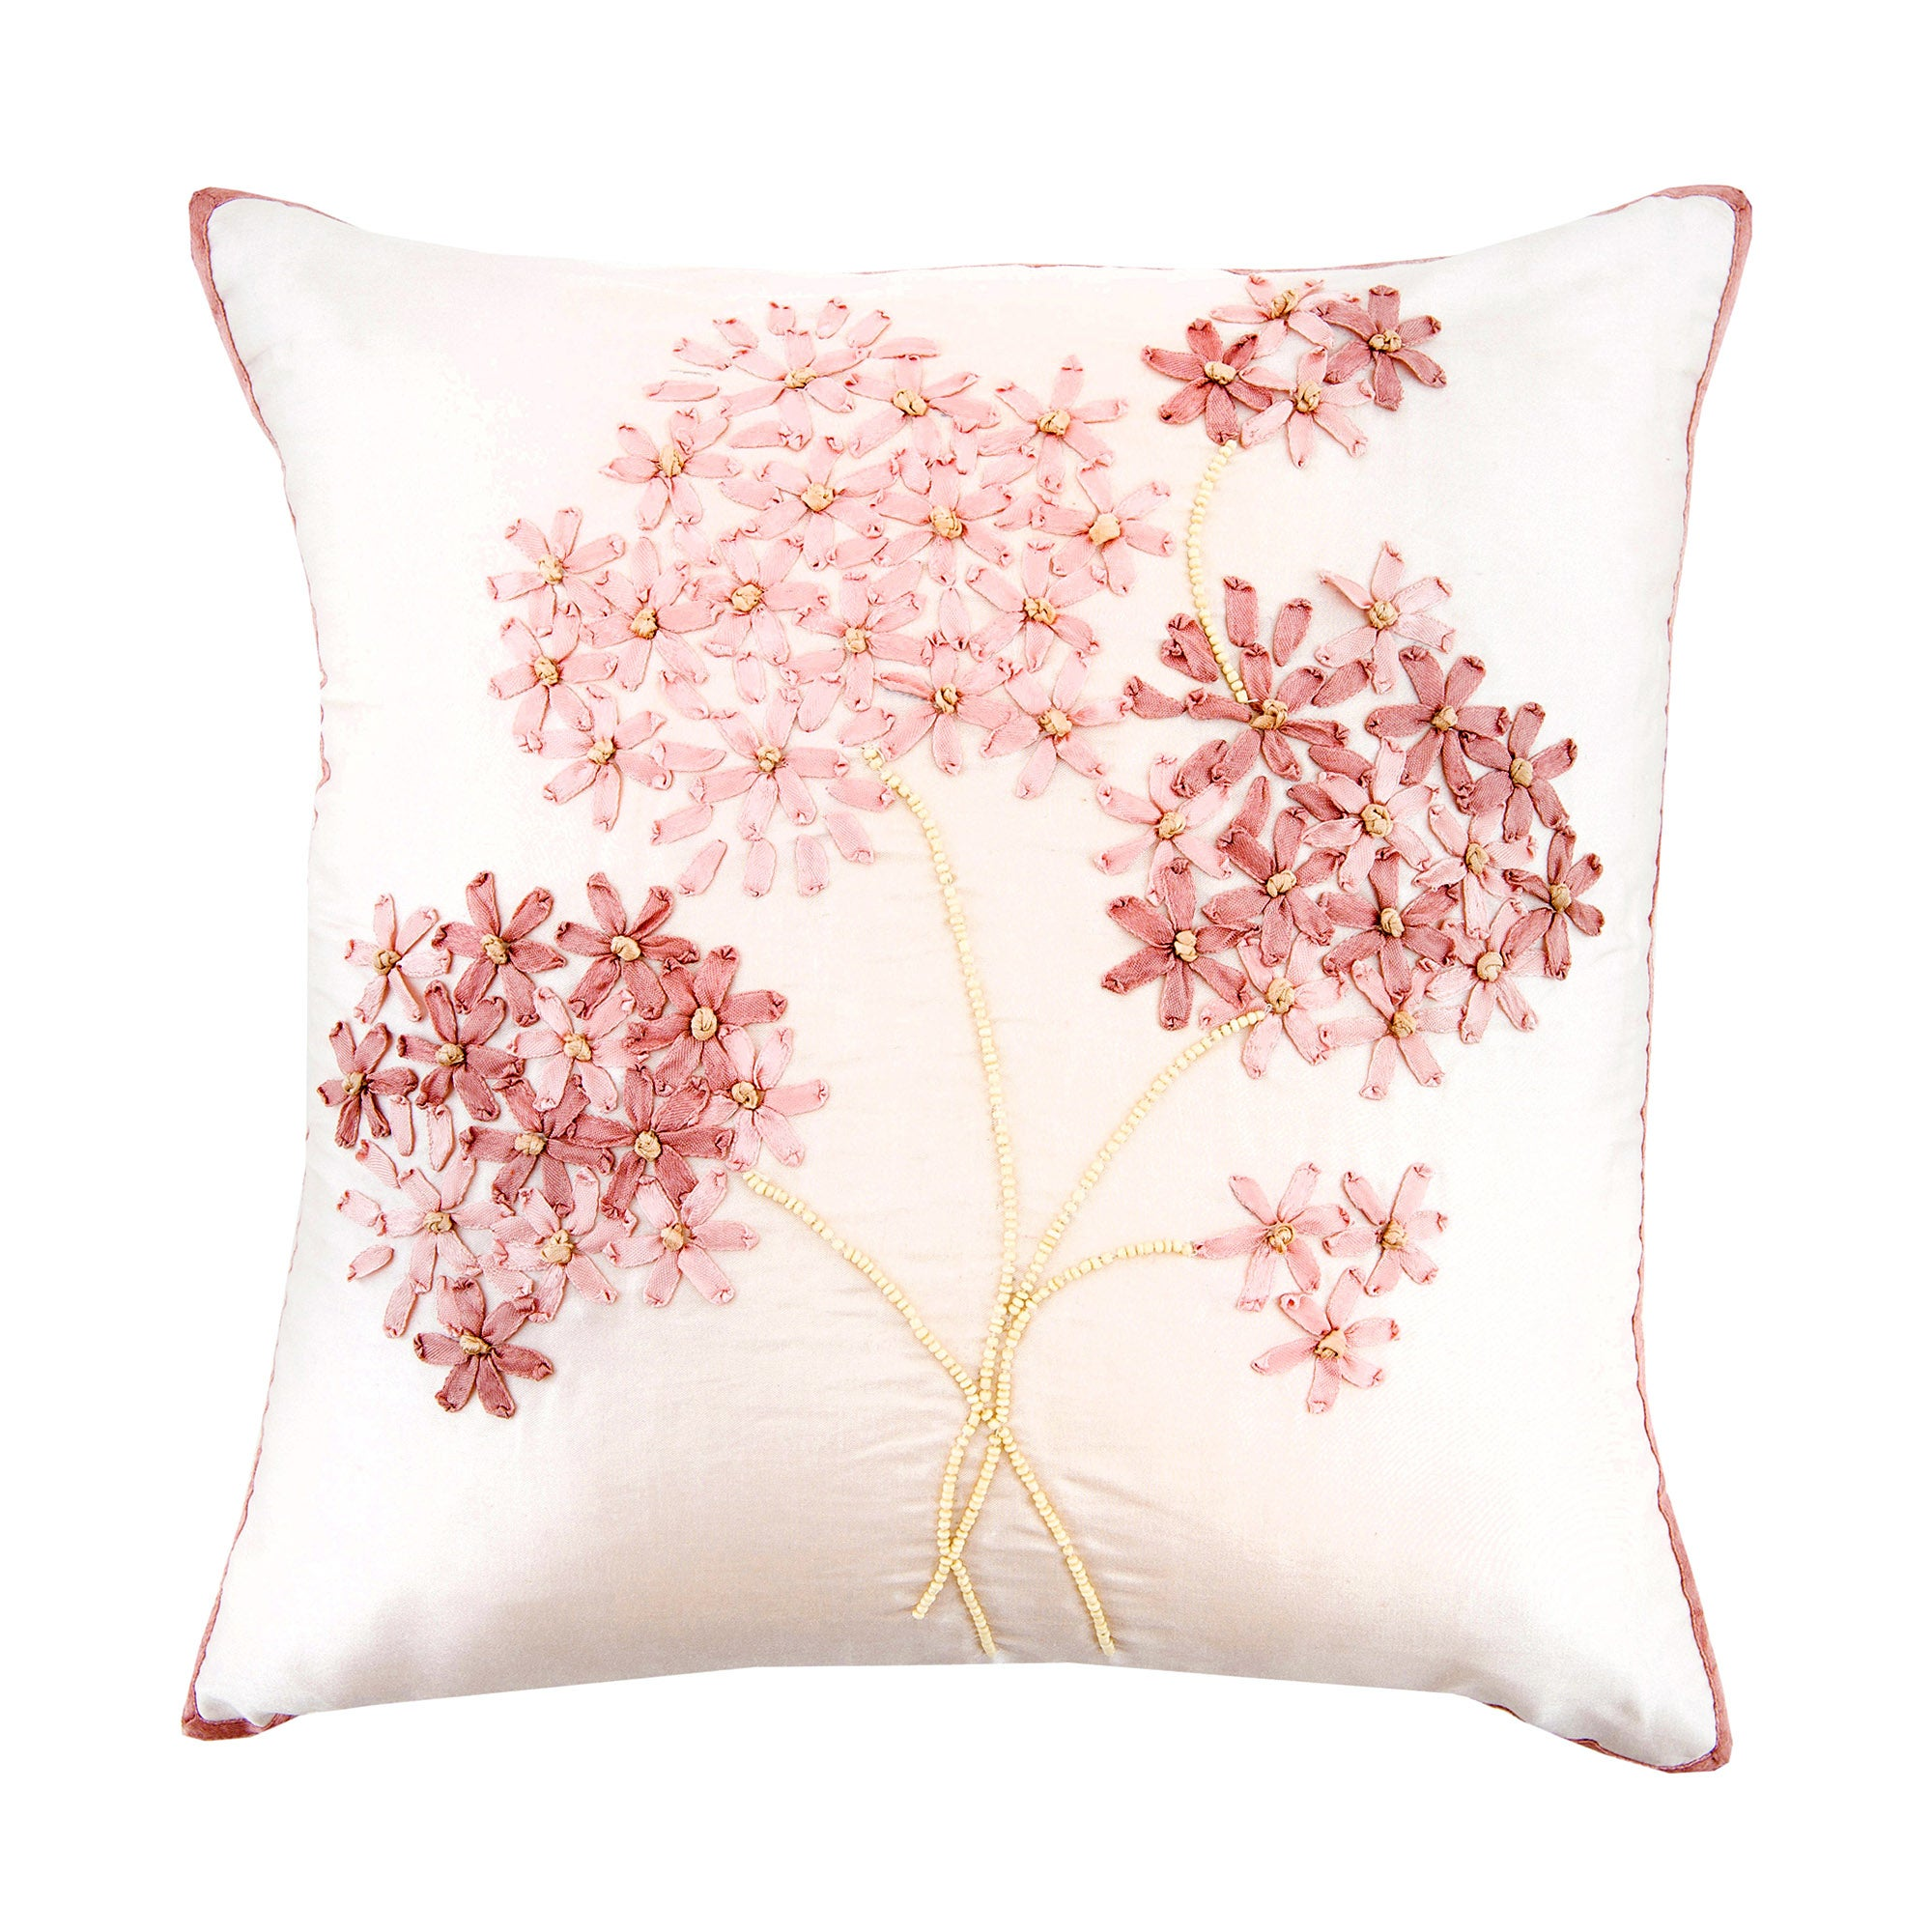 Blush Hydrangea Cushion